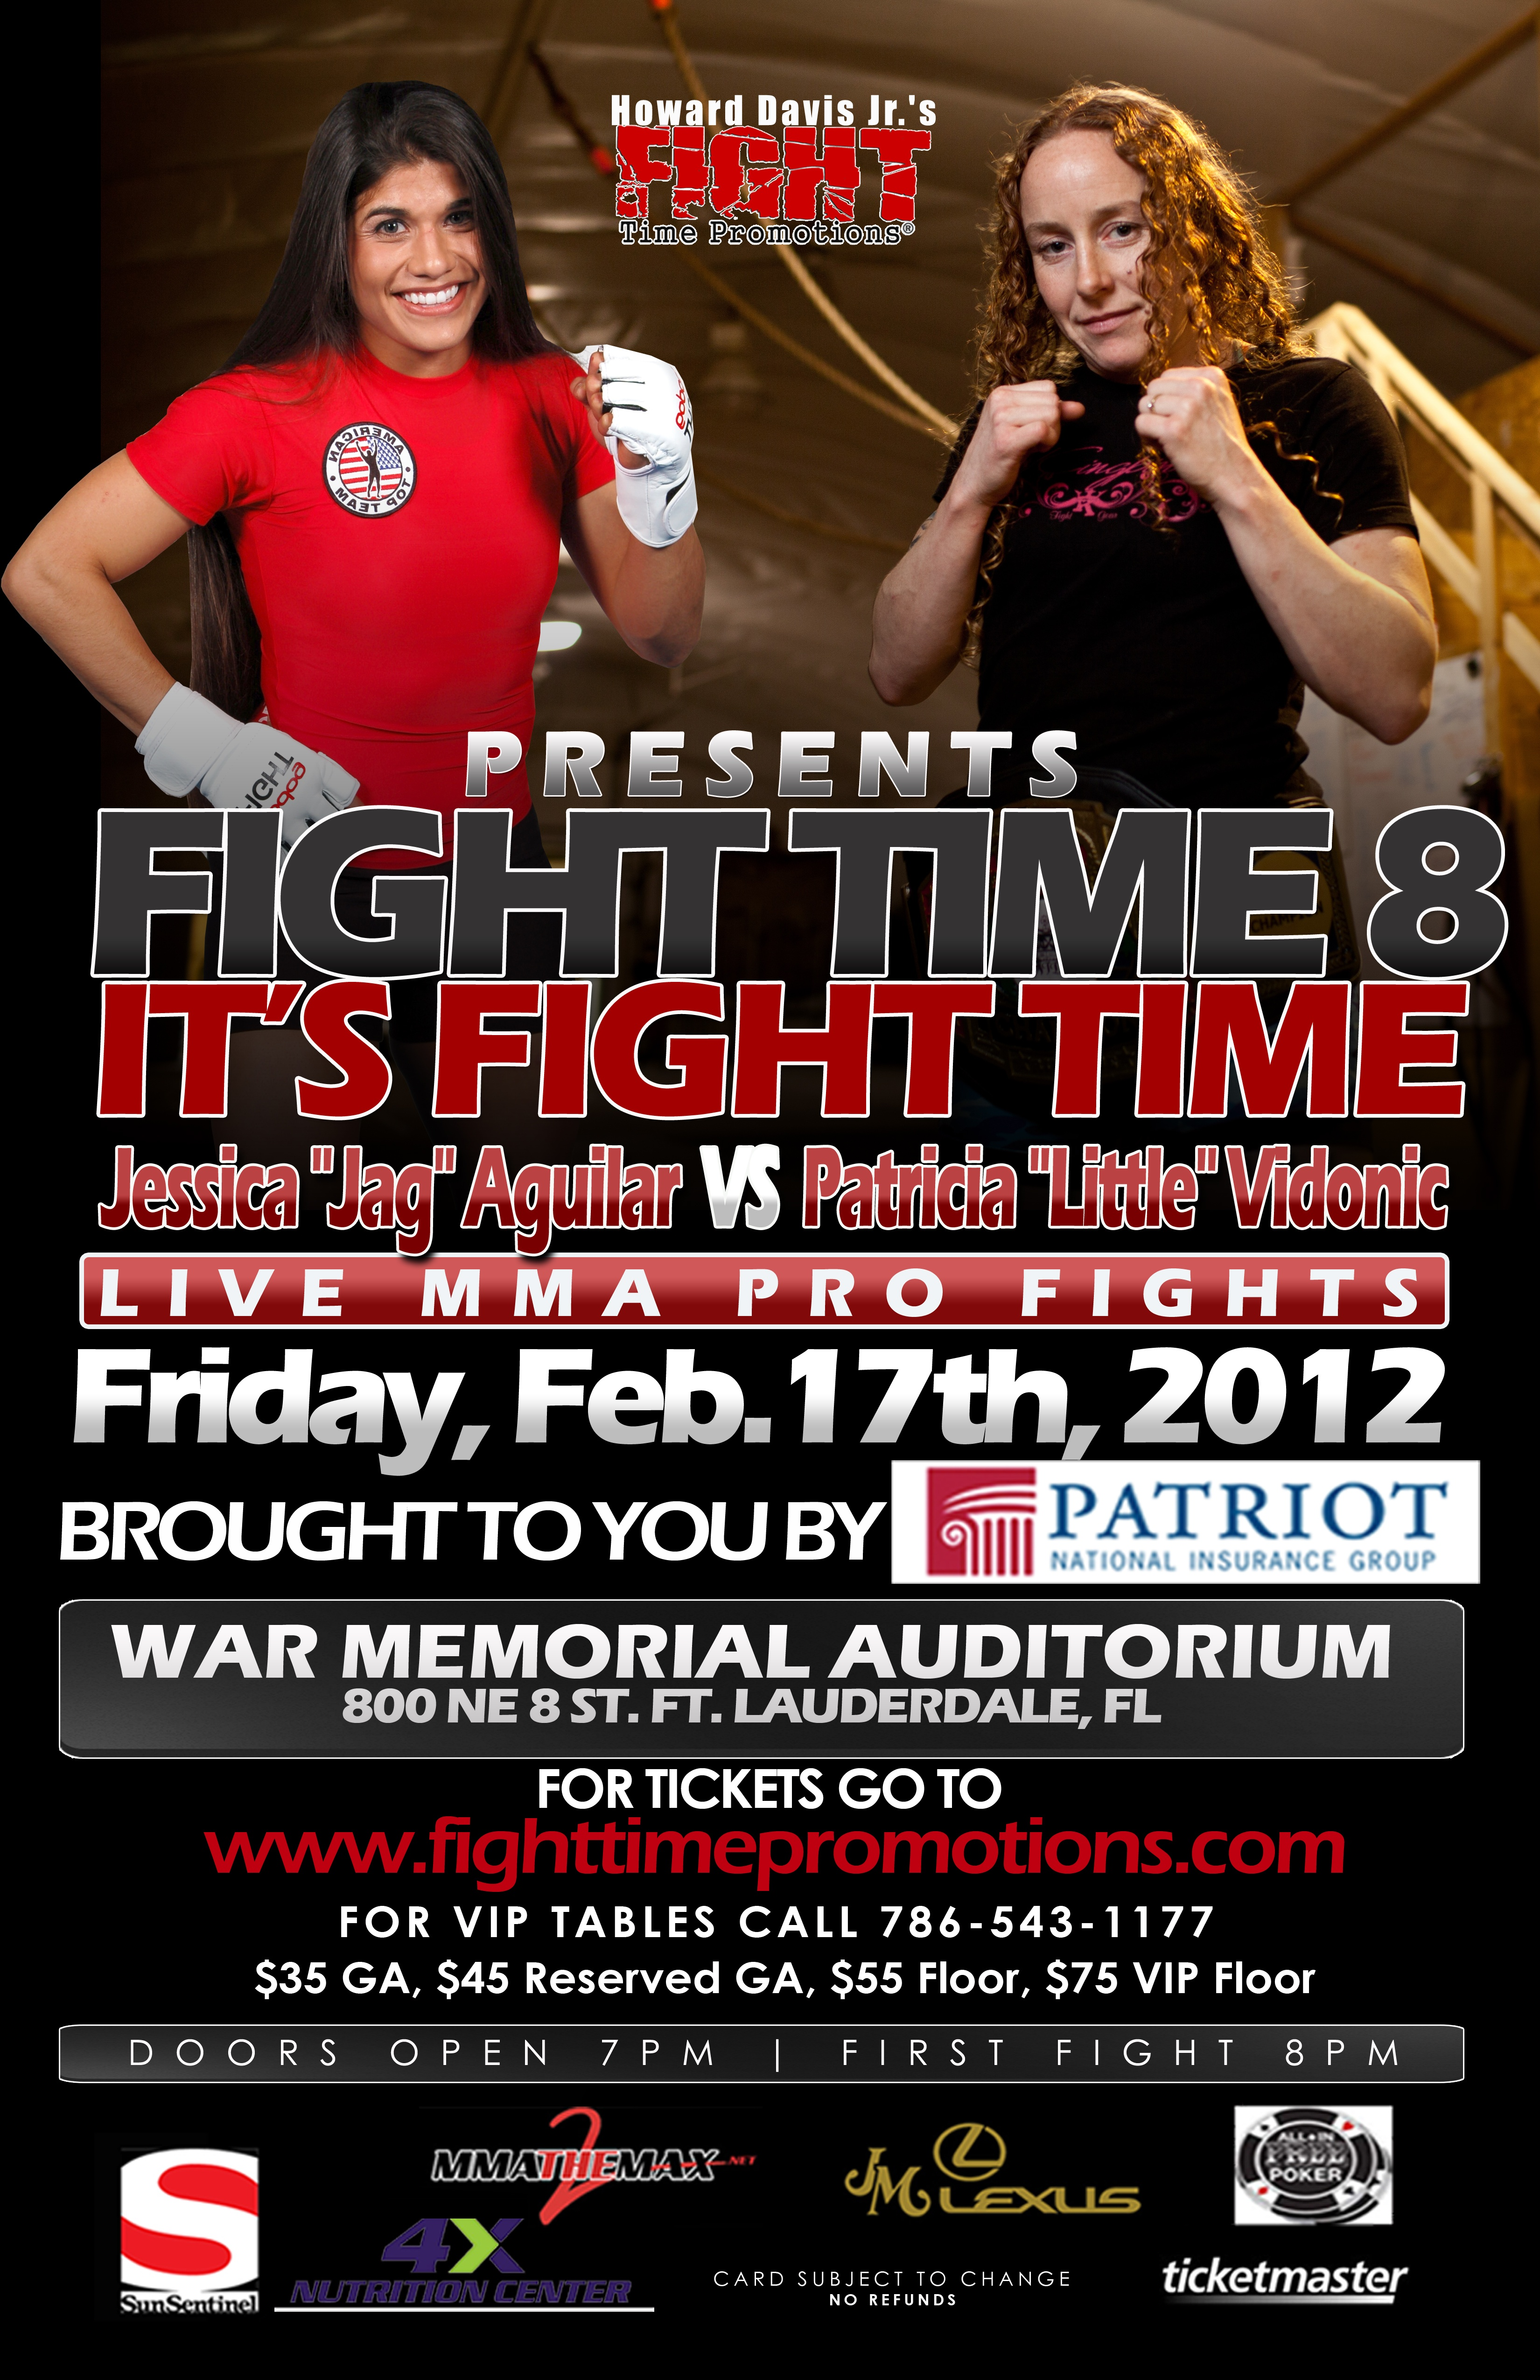 Fight Time 8 event set for February 17th in Fort Lauderdale, Florida